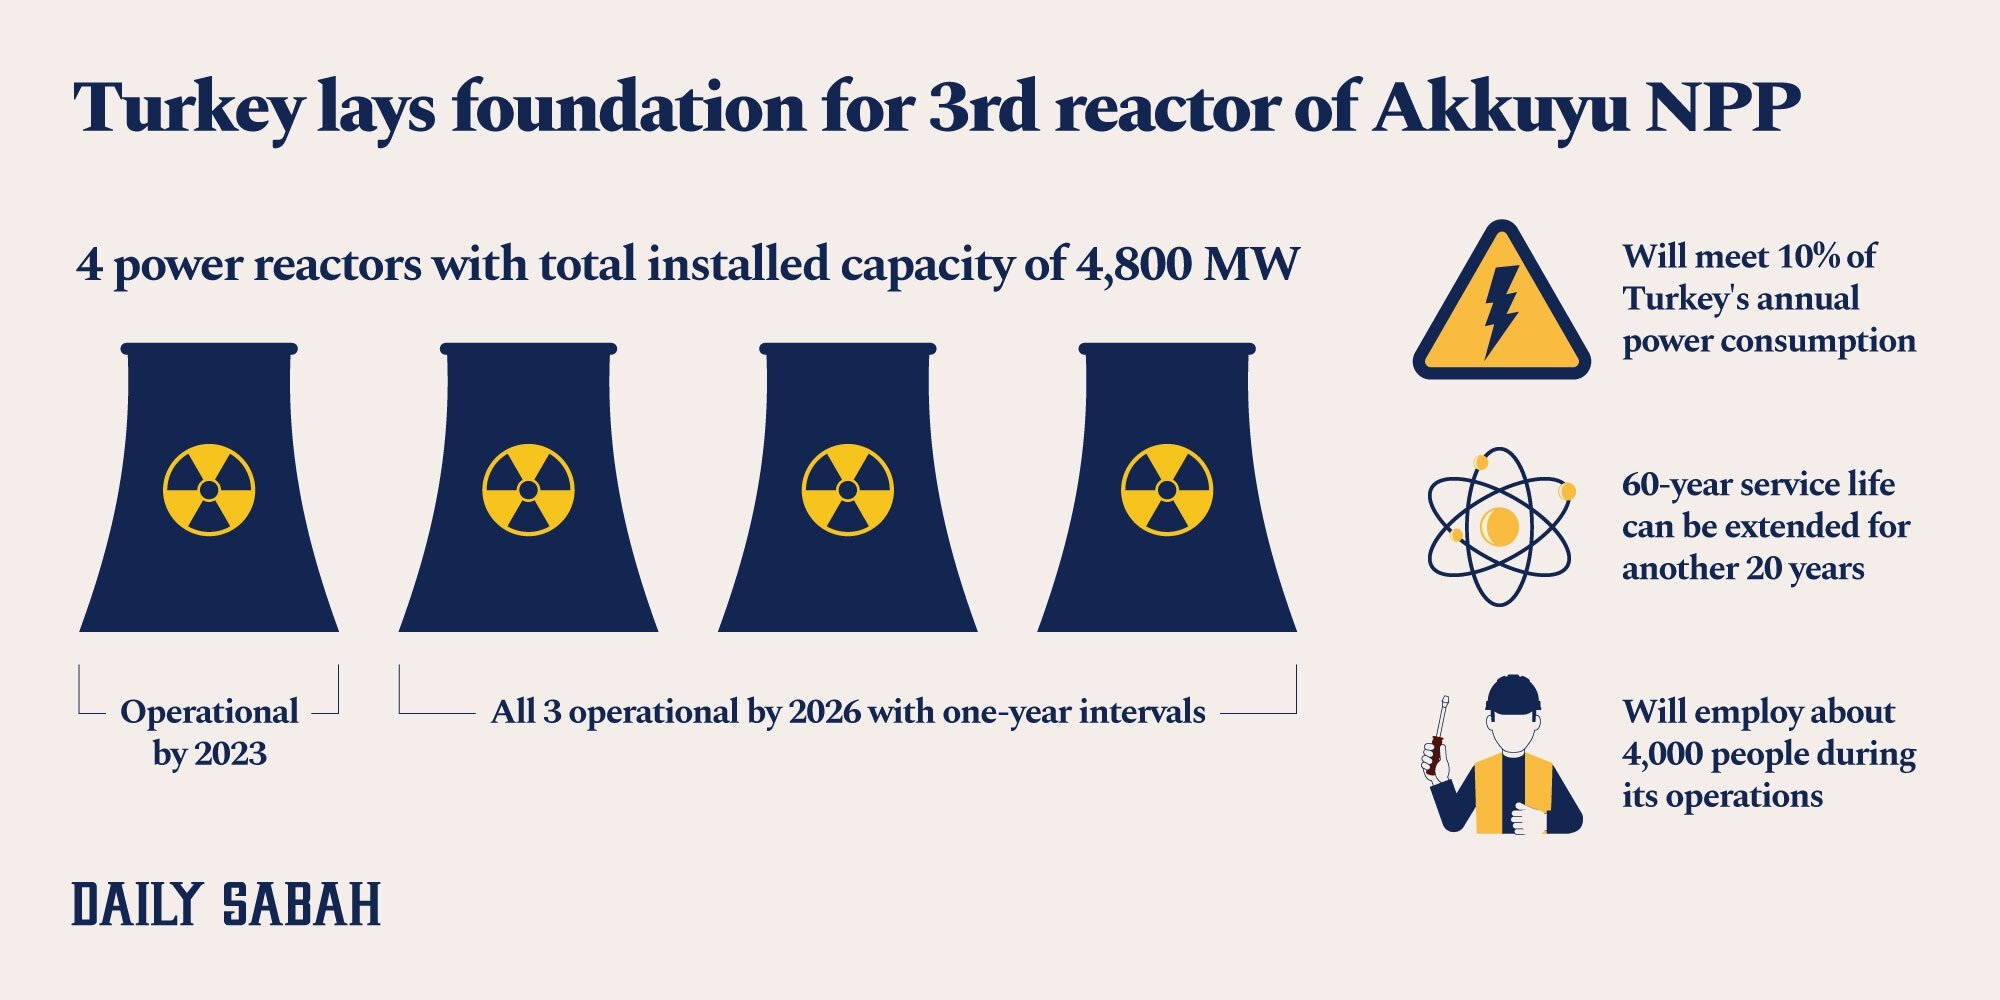 An infographic shows the timeline and features of the Akkuyu Nuclear Power Plant. (By: Adil Girey Ablyatifov / Daily Sabah)